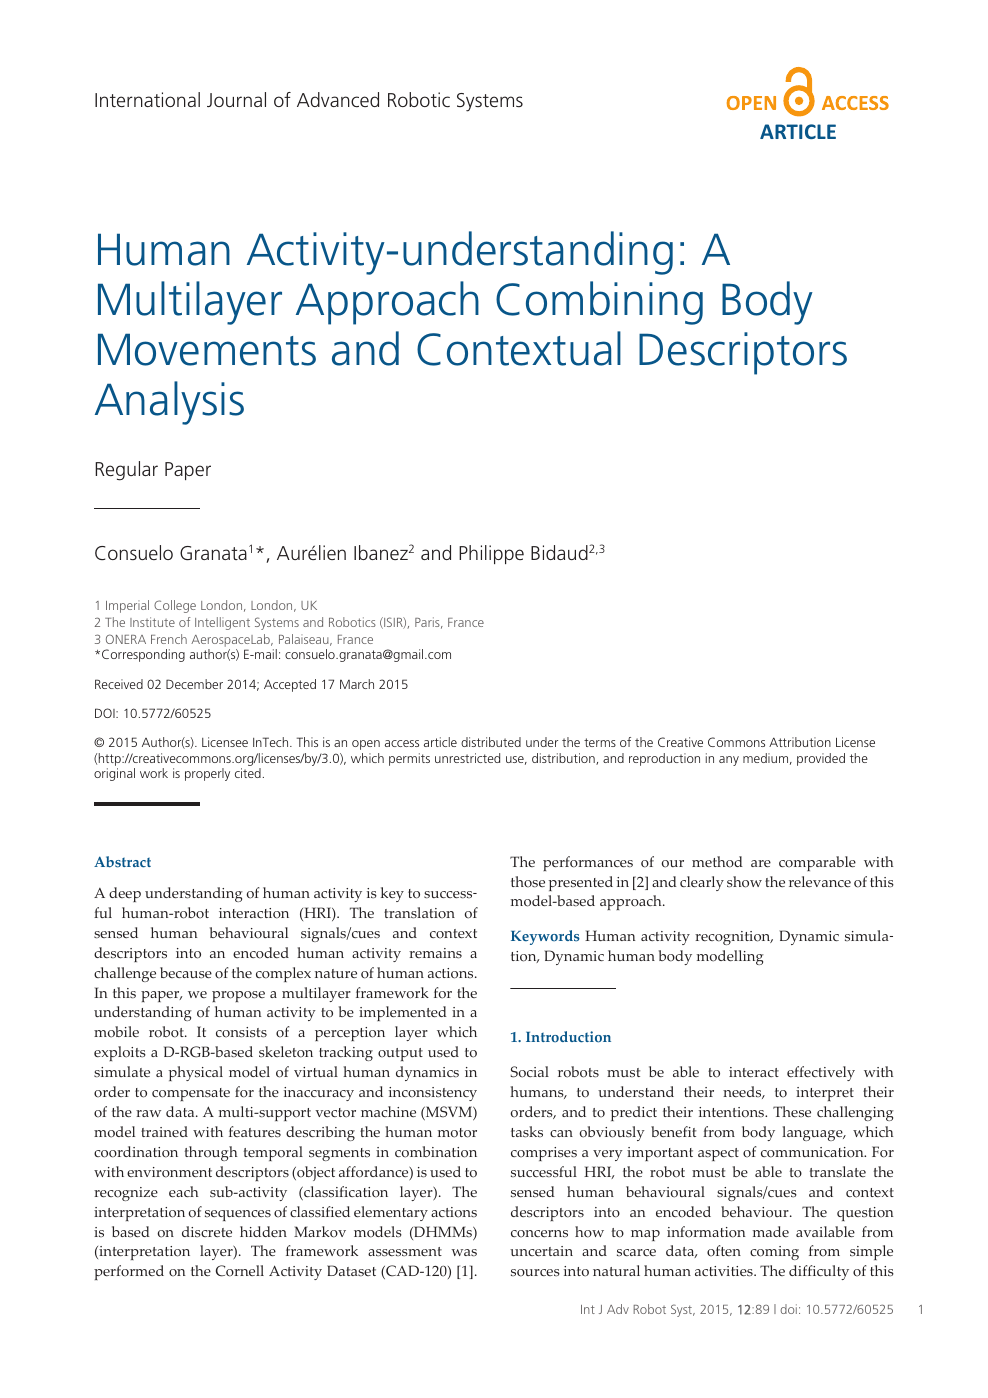 Human Activity-understanding: A Multilayer Approach Combining Body